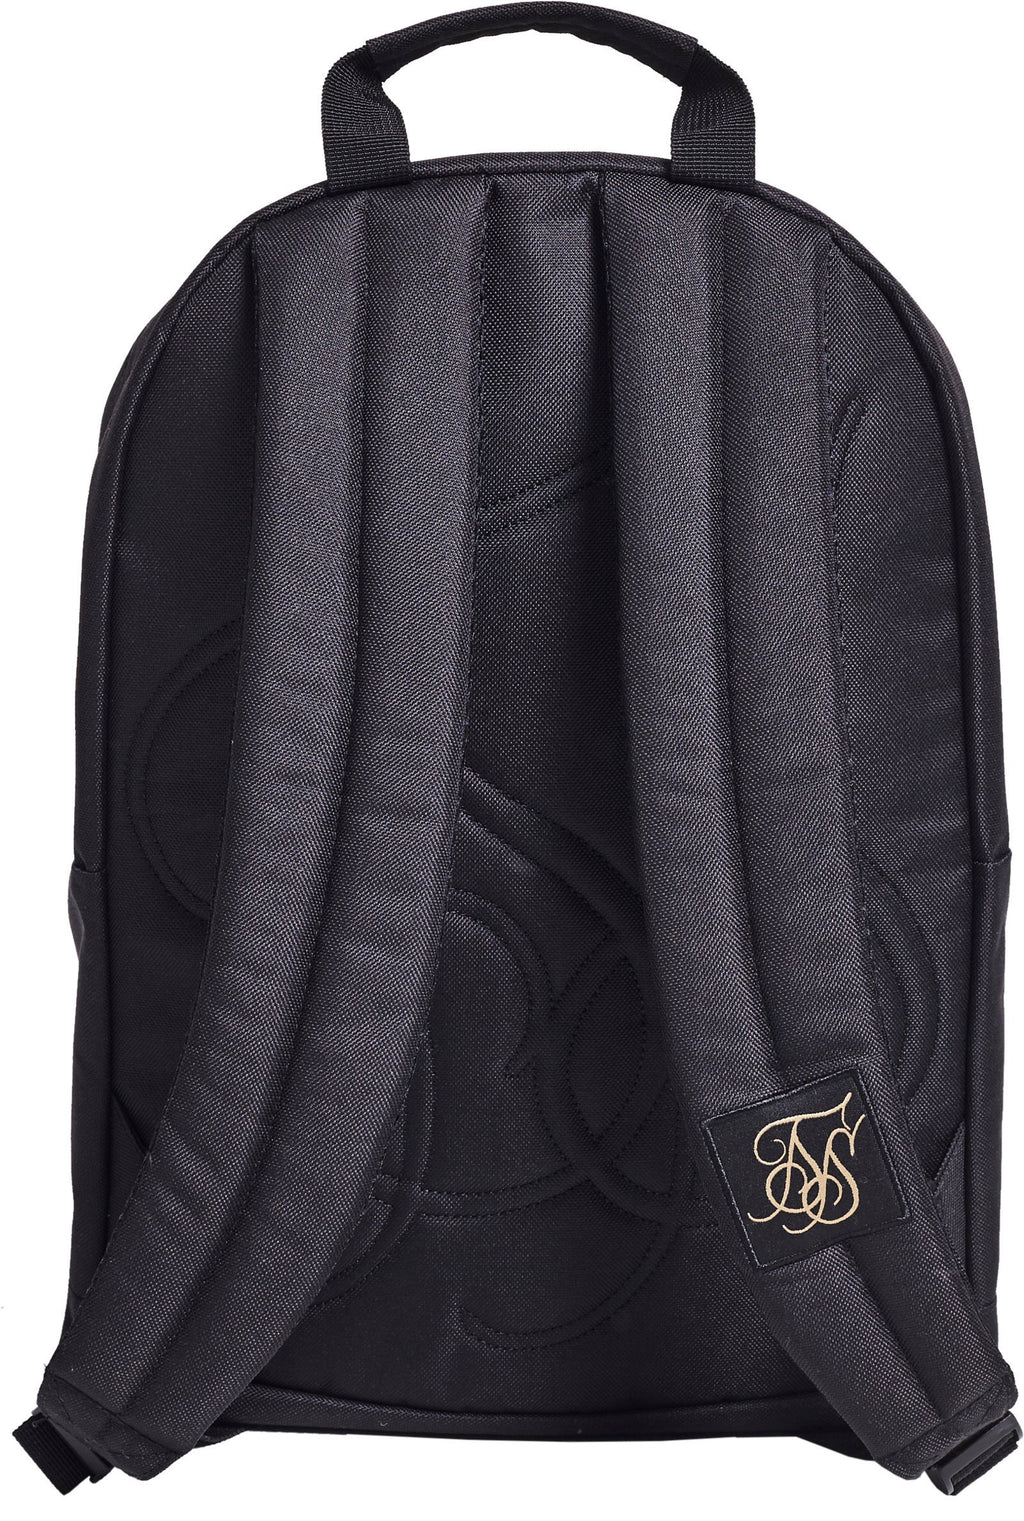 Sik Silk Pouch Backpack Bag Black